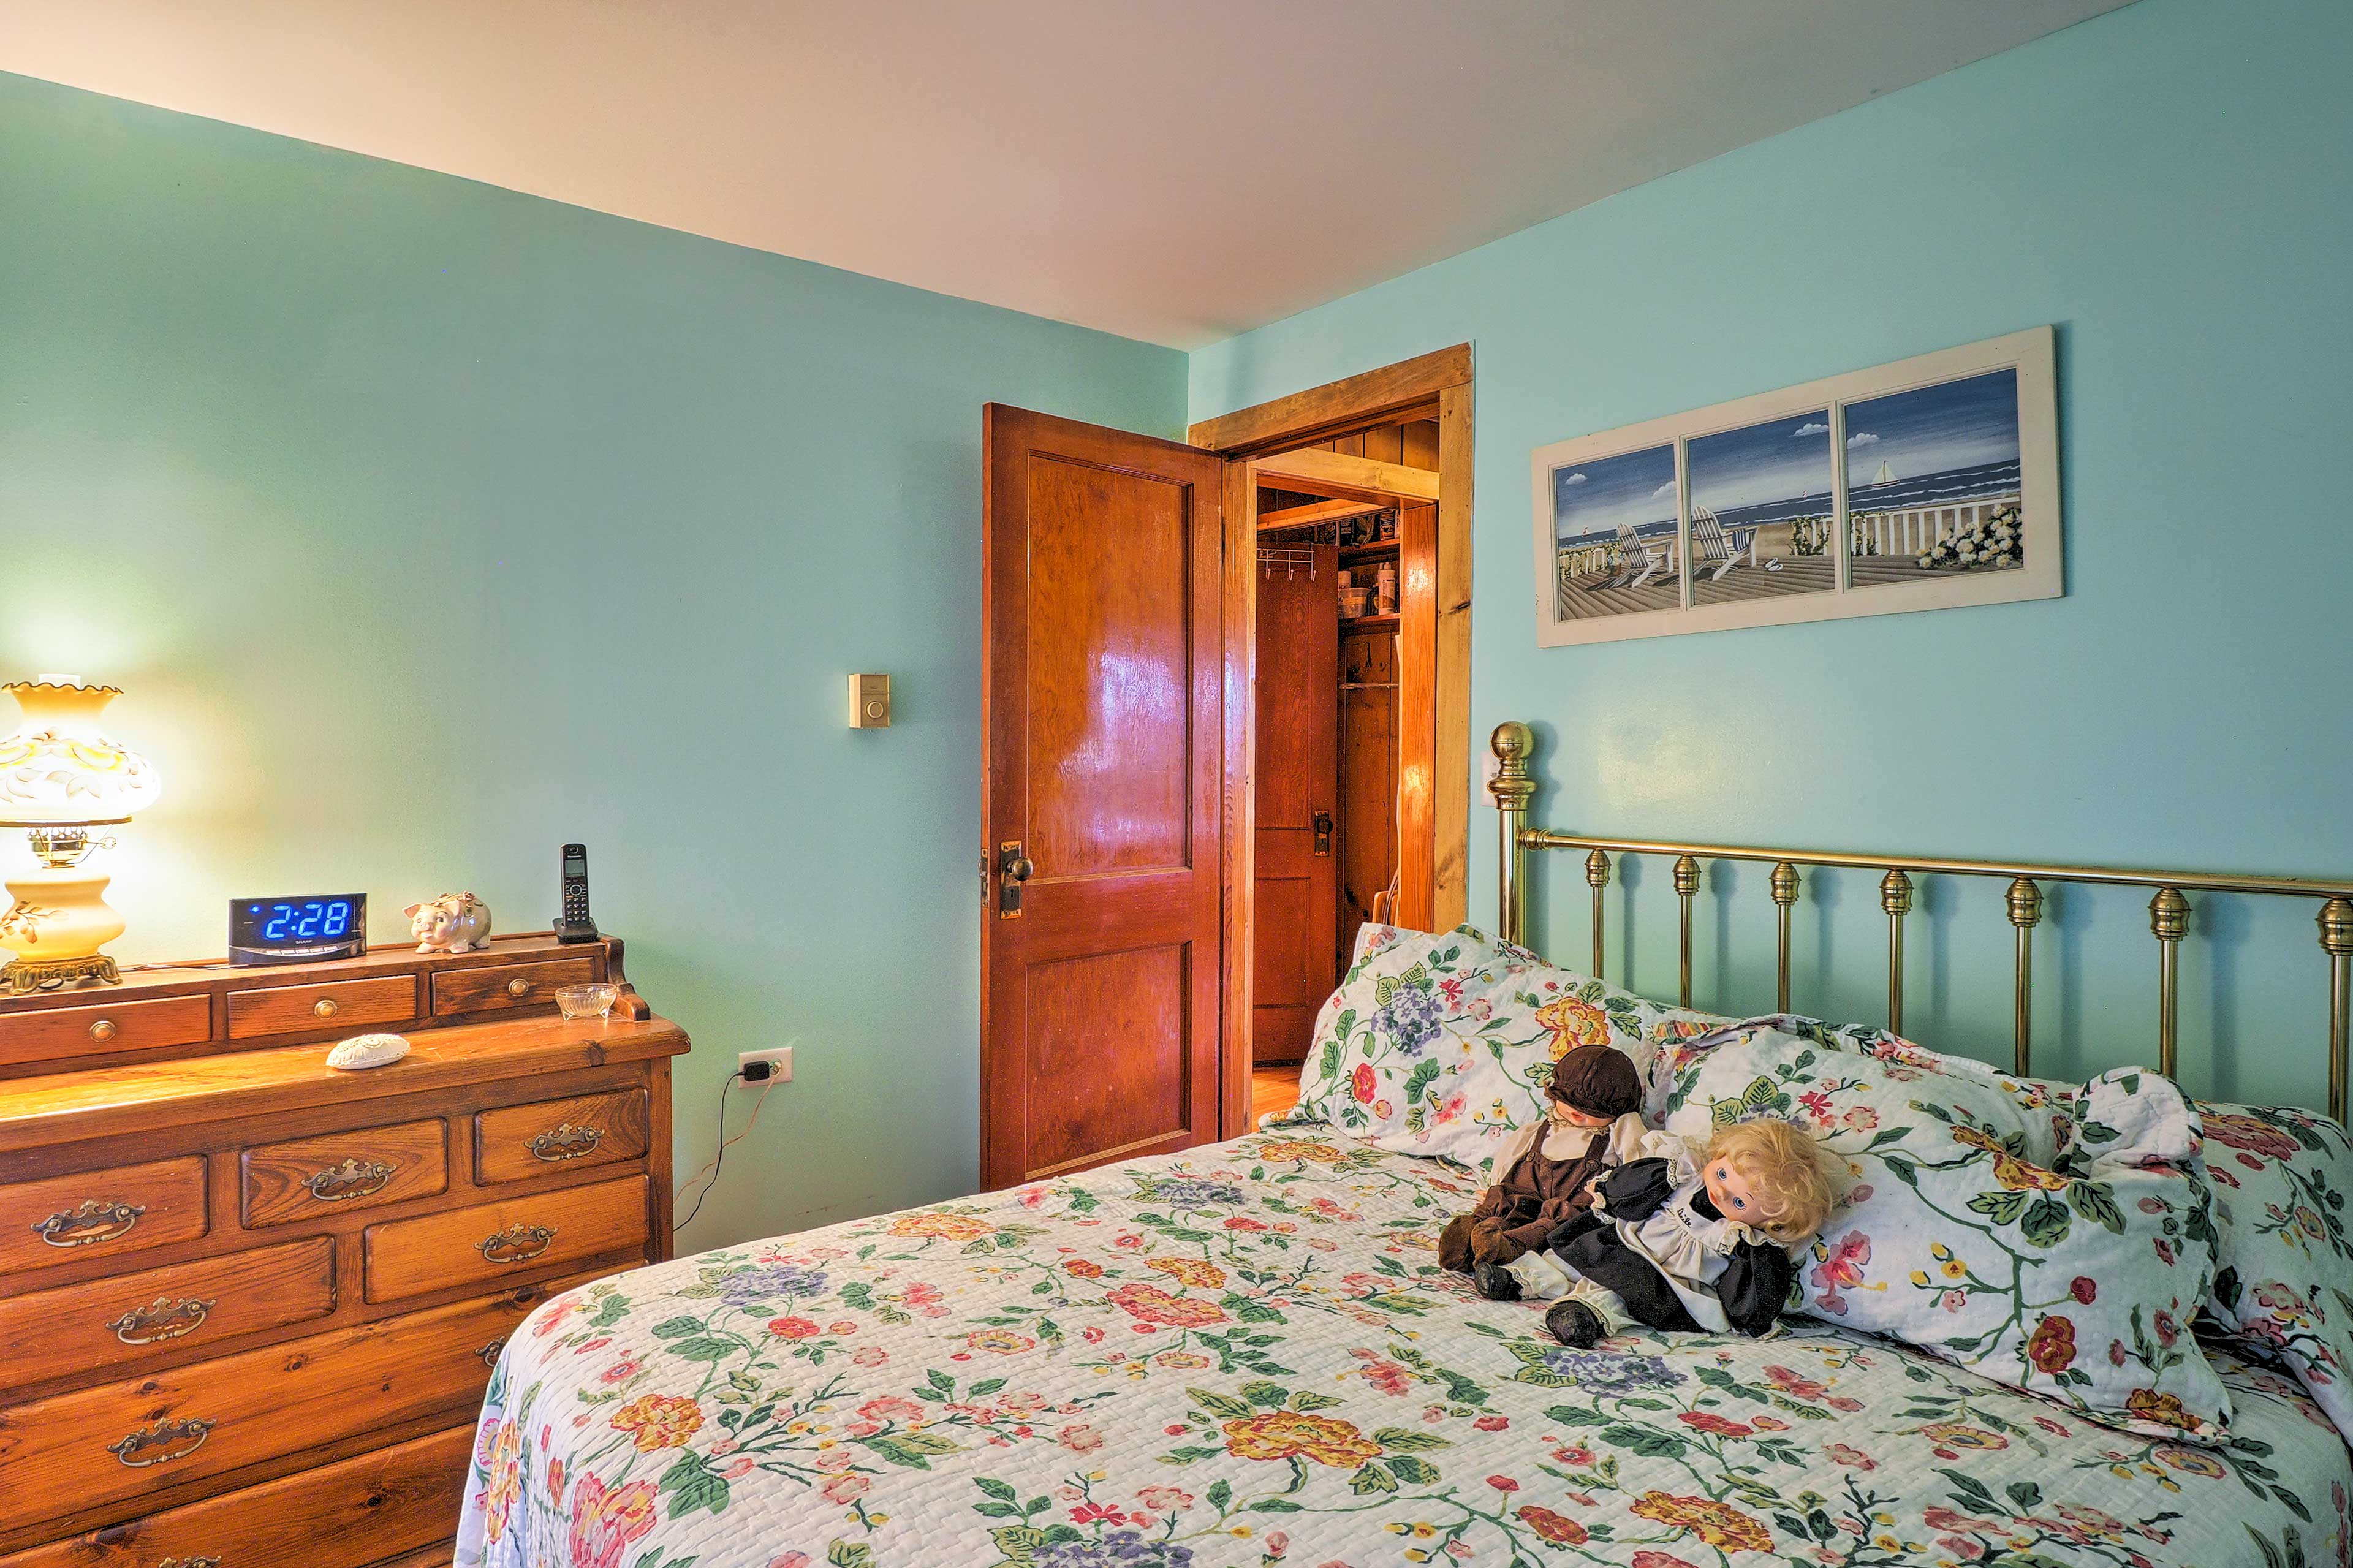 The second bedroom has a full bed that can sleep up to 2 guests.